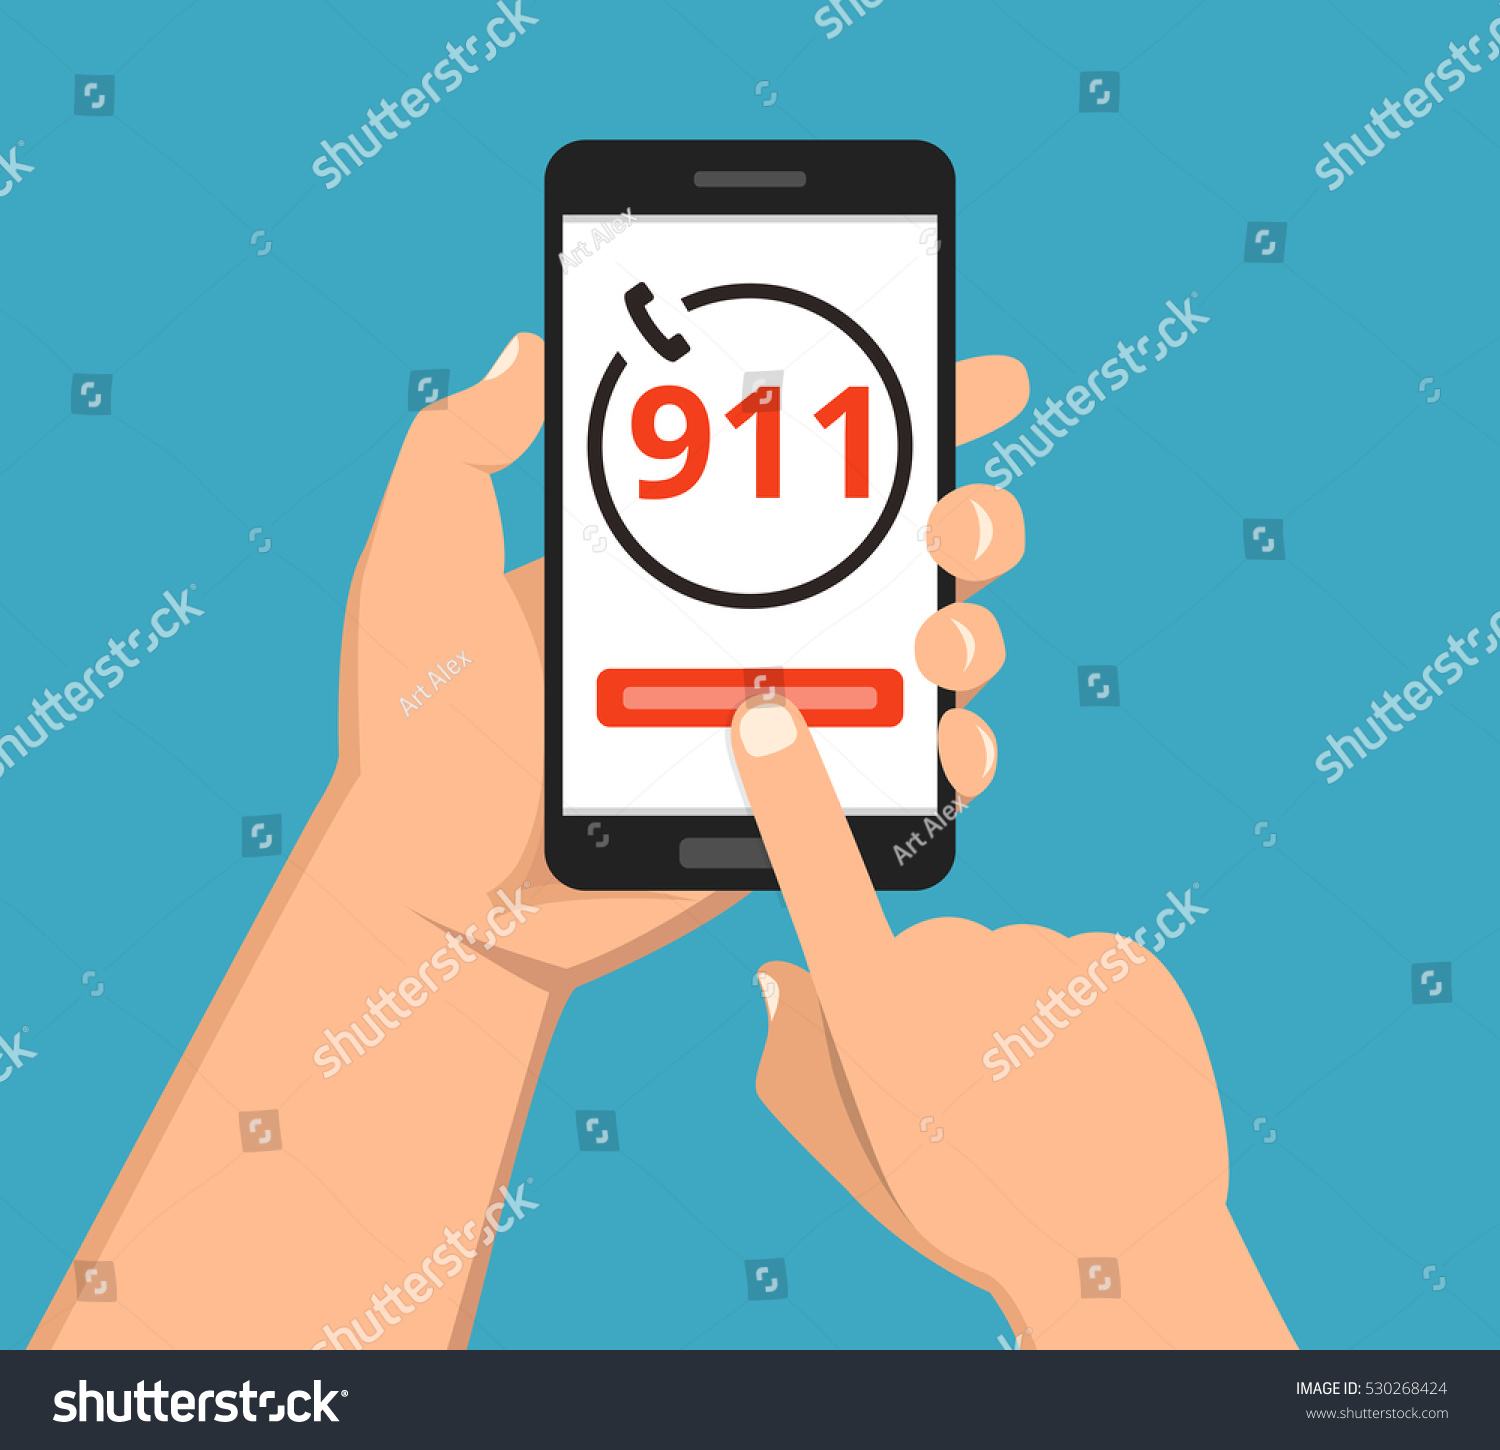 Emergency Call 911 Concept Hand Holding Stock Vector